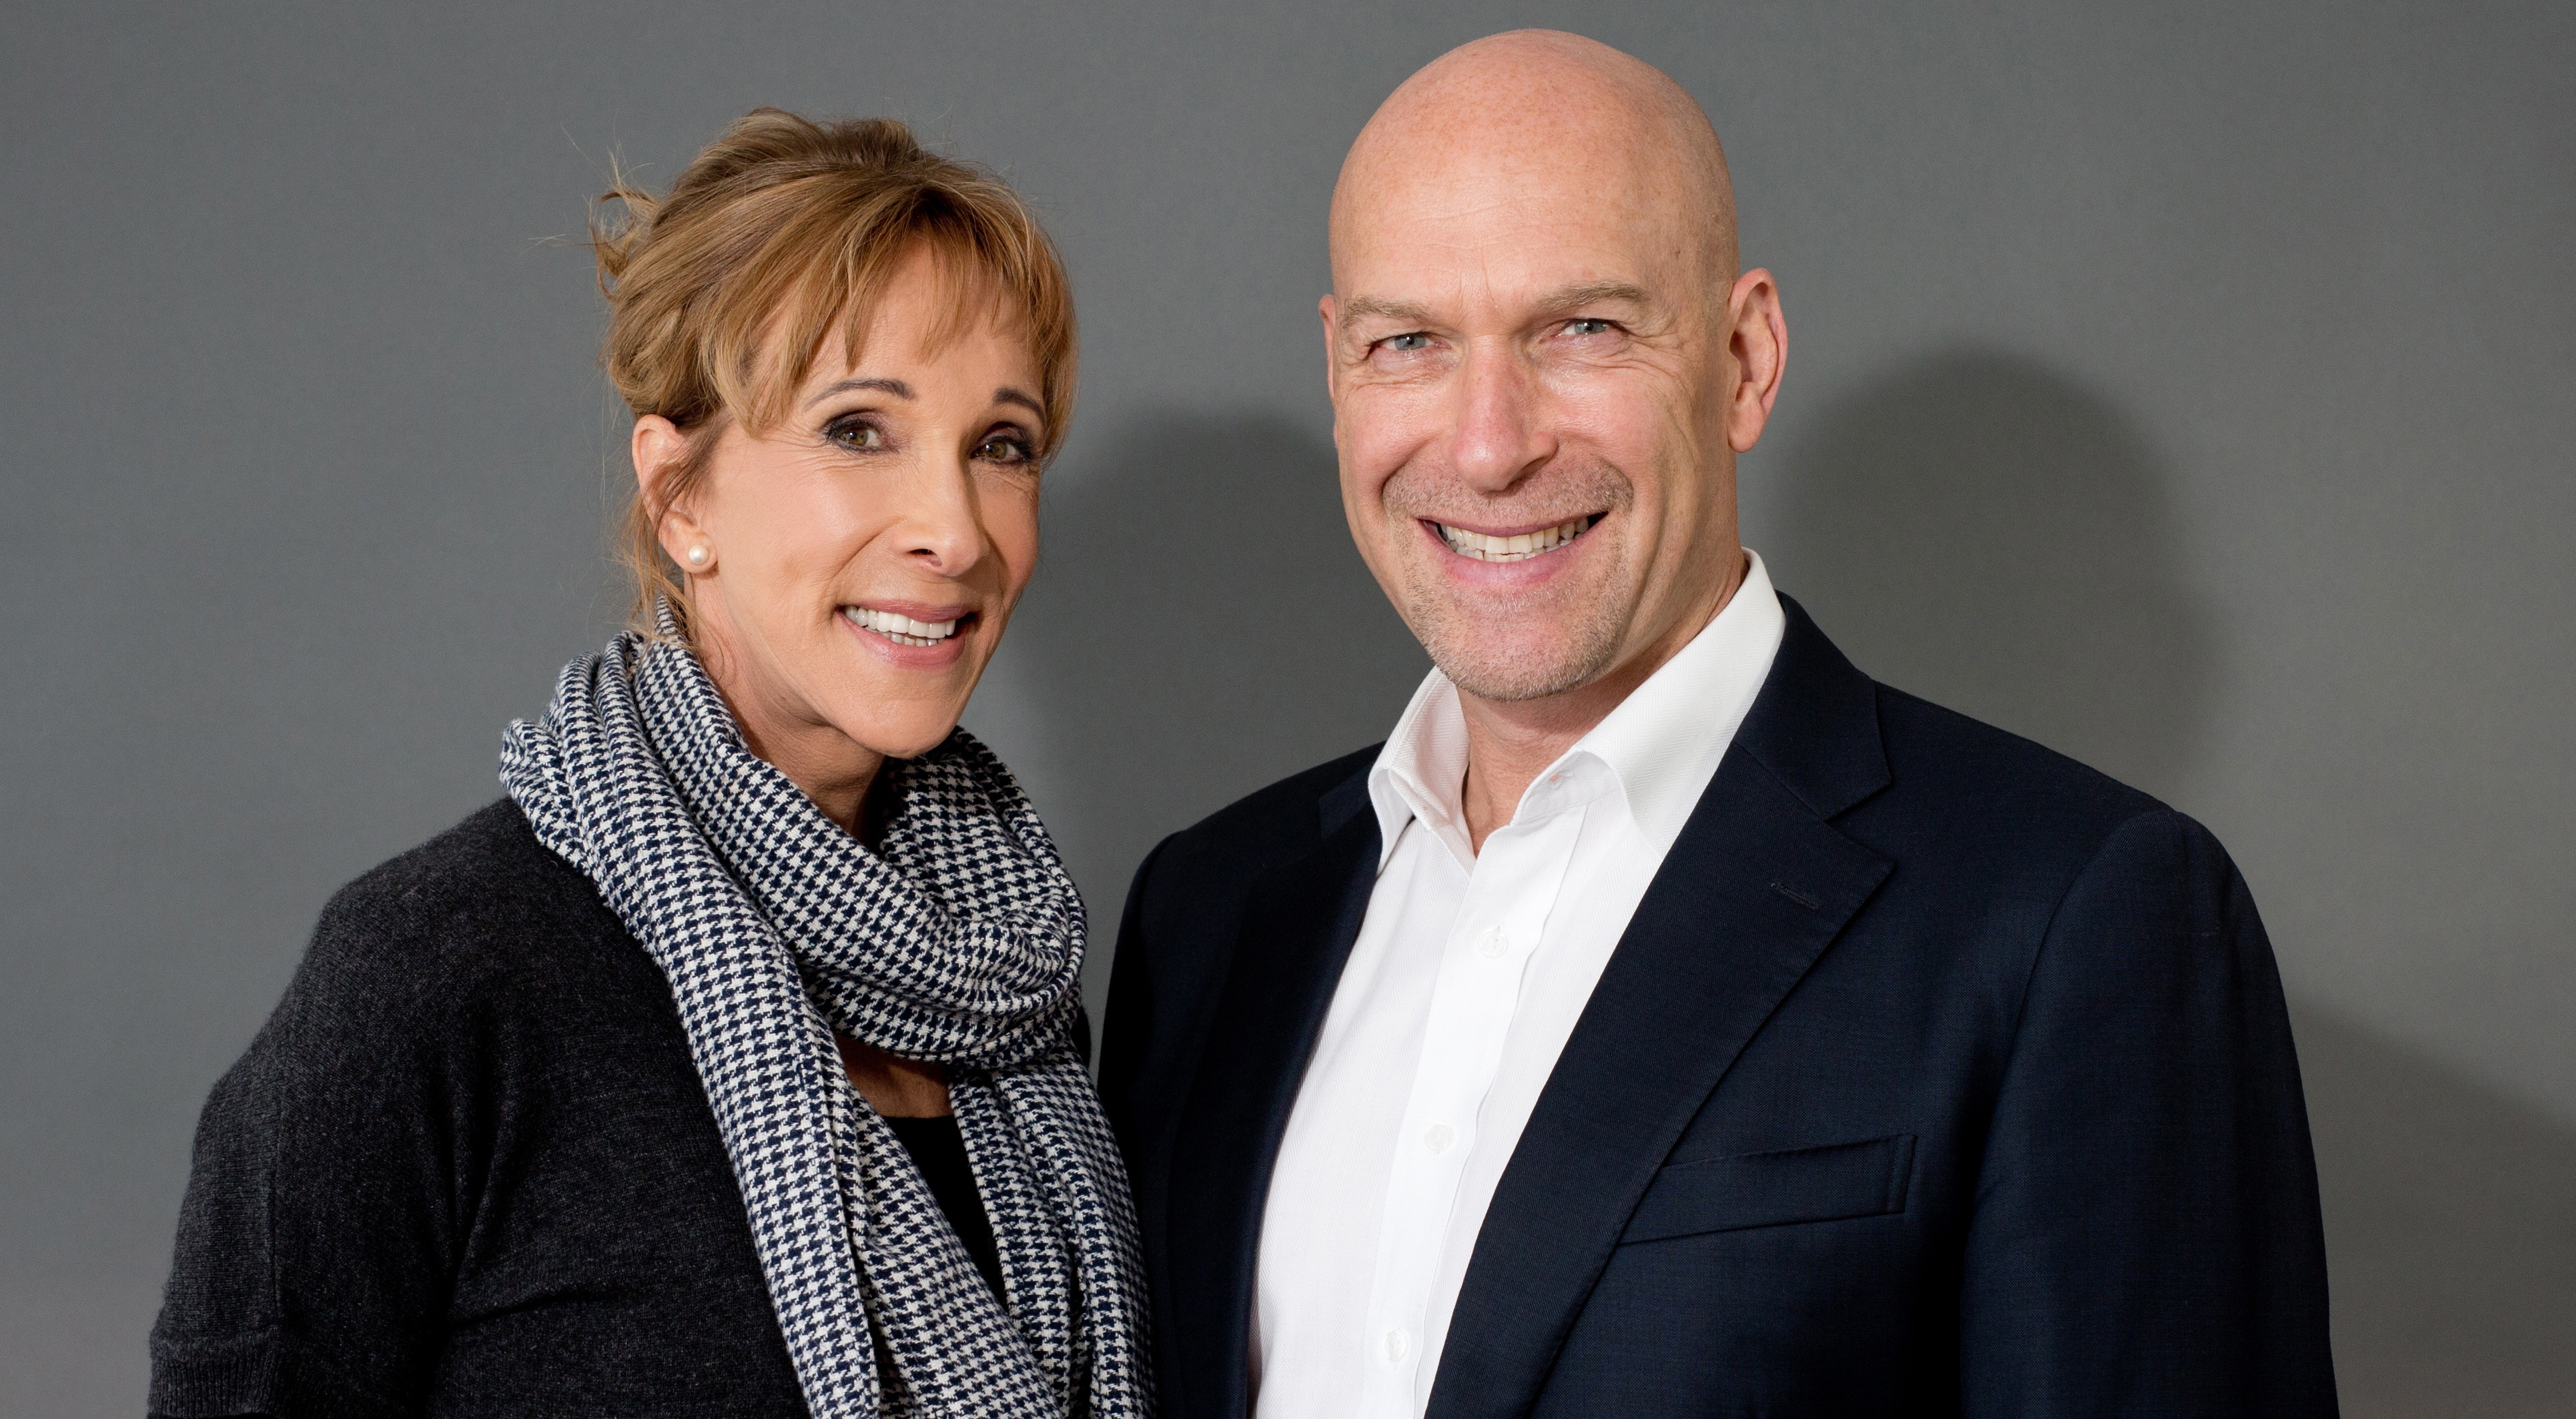 """Executive Longevity Specialist"" Tim Bean with his partner, Anne Laing"